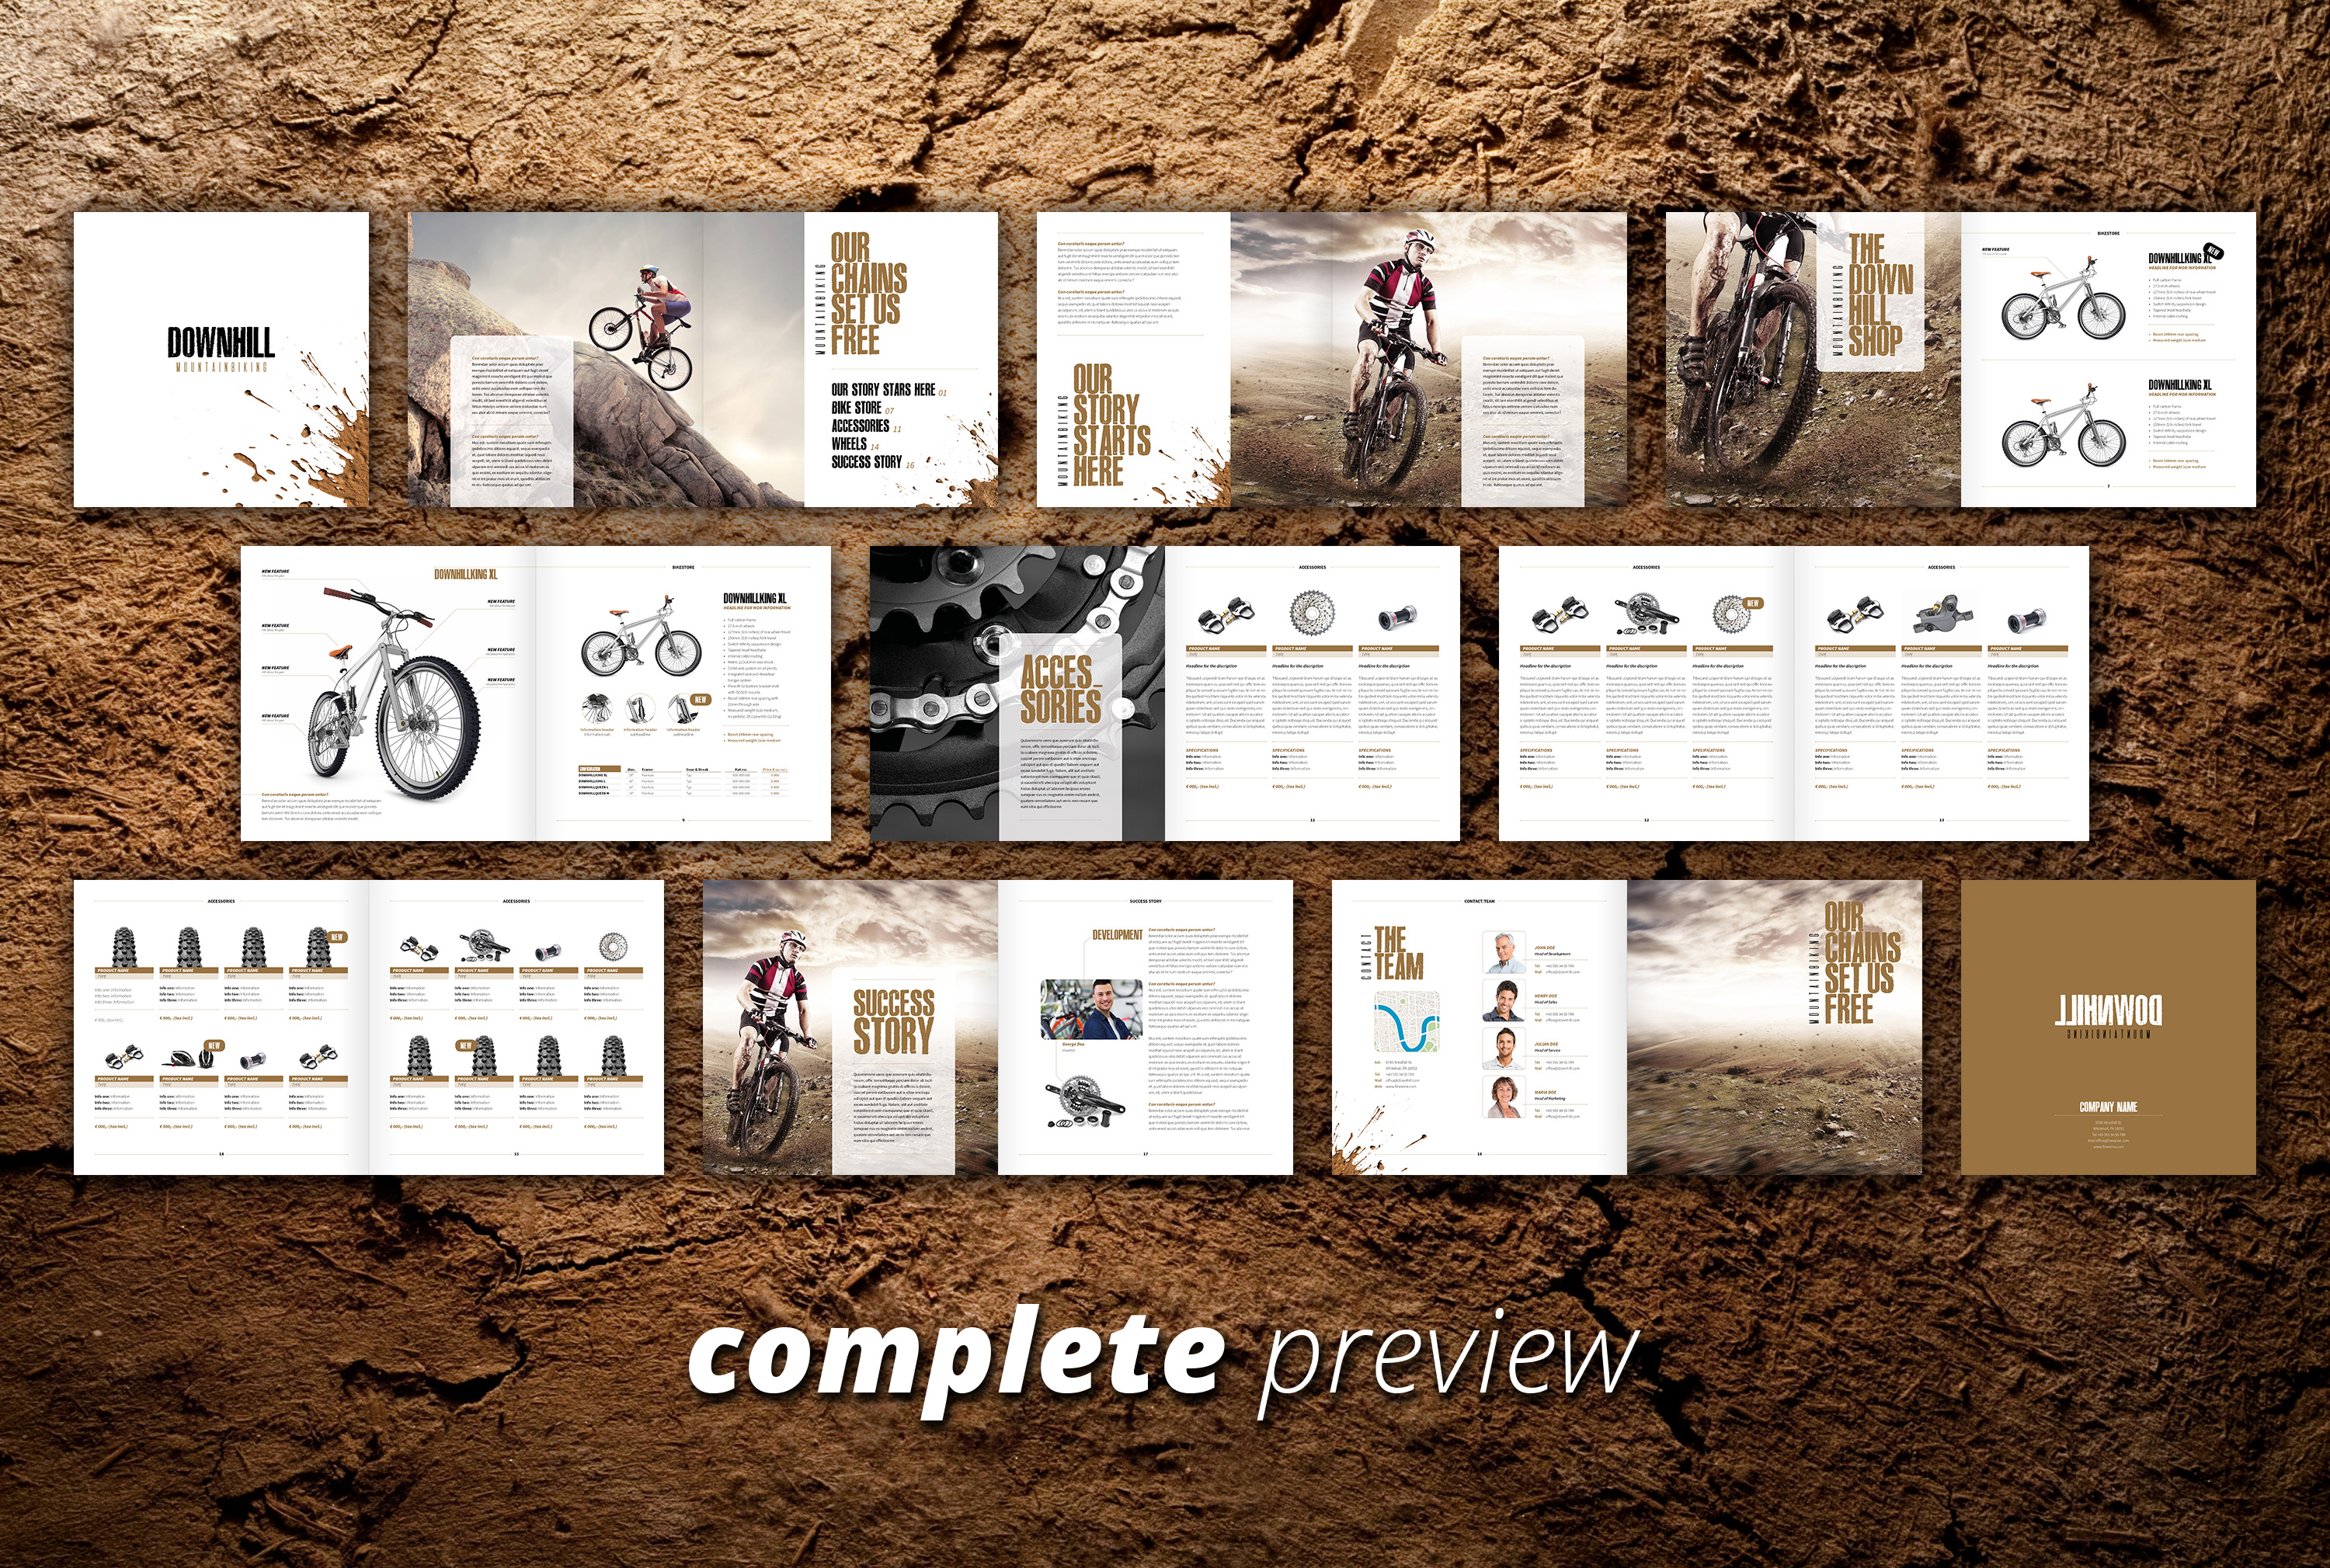 Downhill - Sales & Image Brochure example image 3